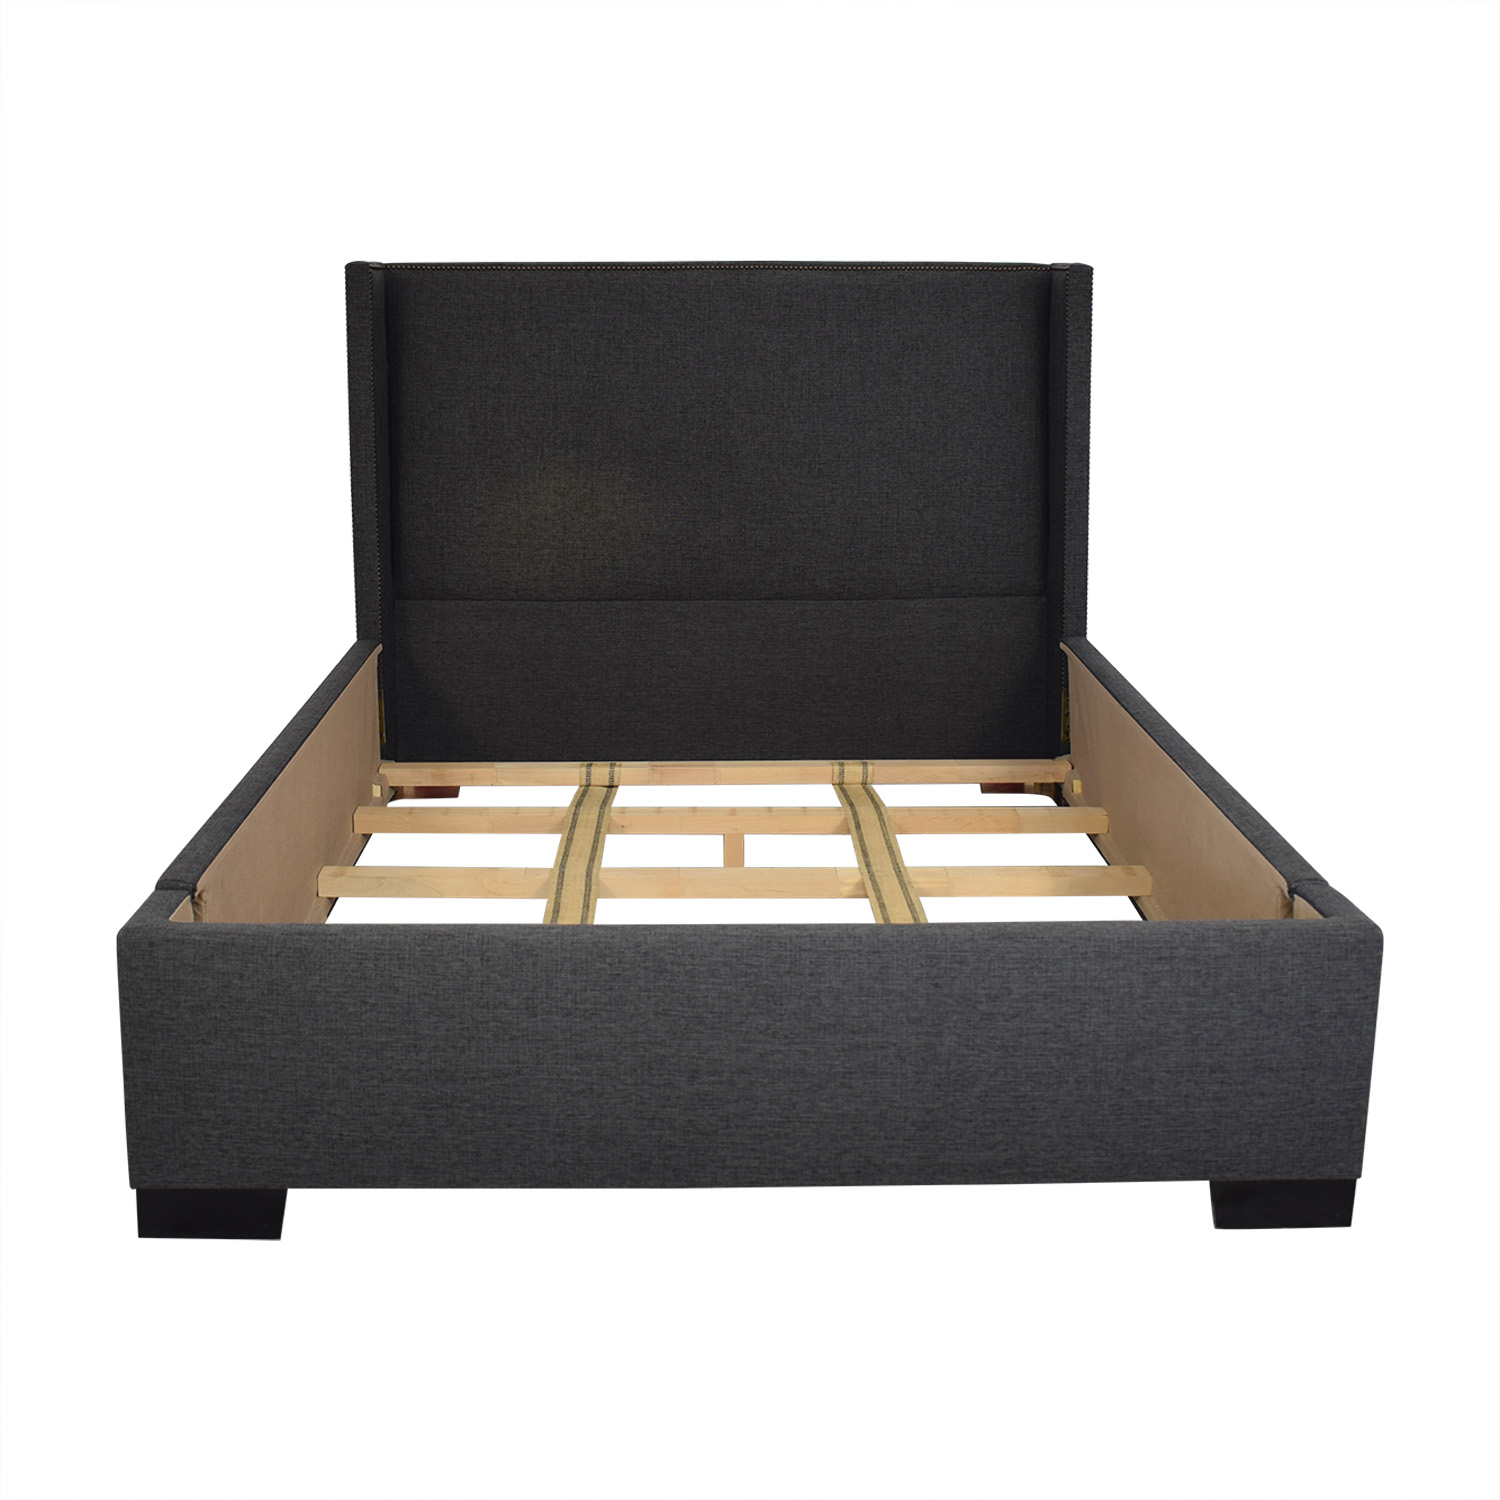 Apt2B Apt2B Everett Upholstered Bed second hand